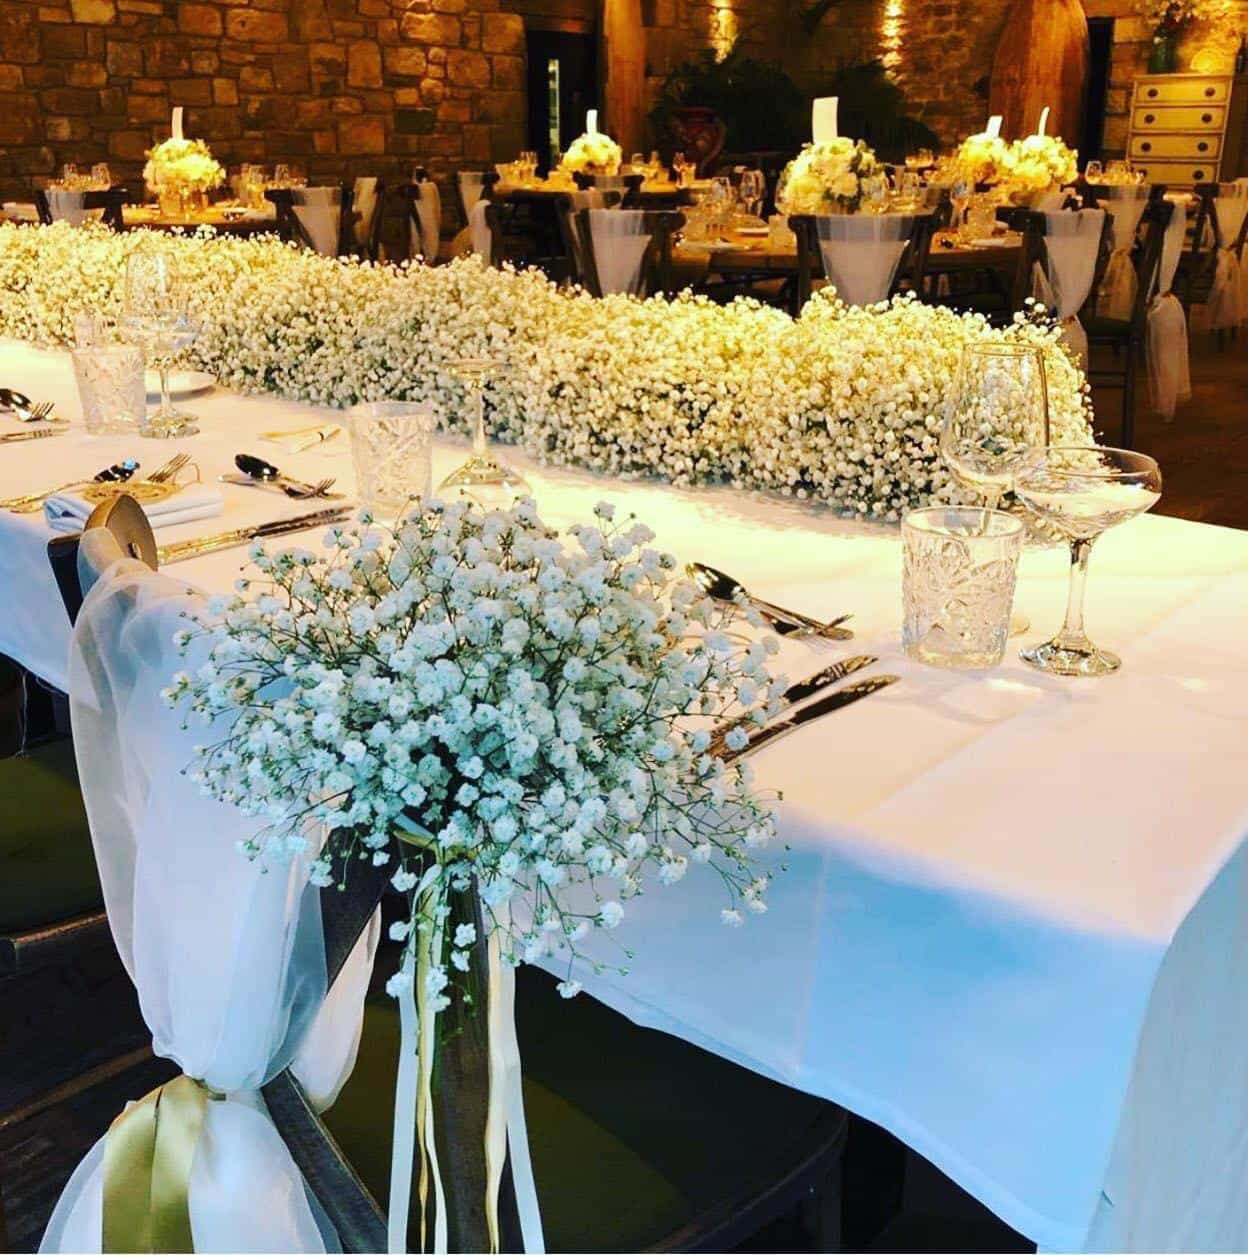 Wedding breakfast table dressing with fancy flowerly foliage covering tables and chairs